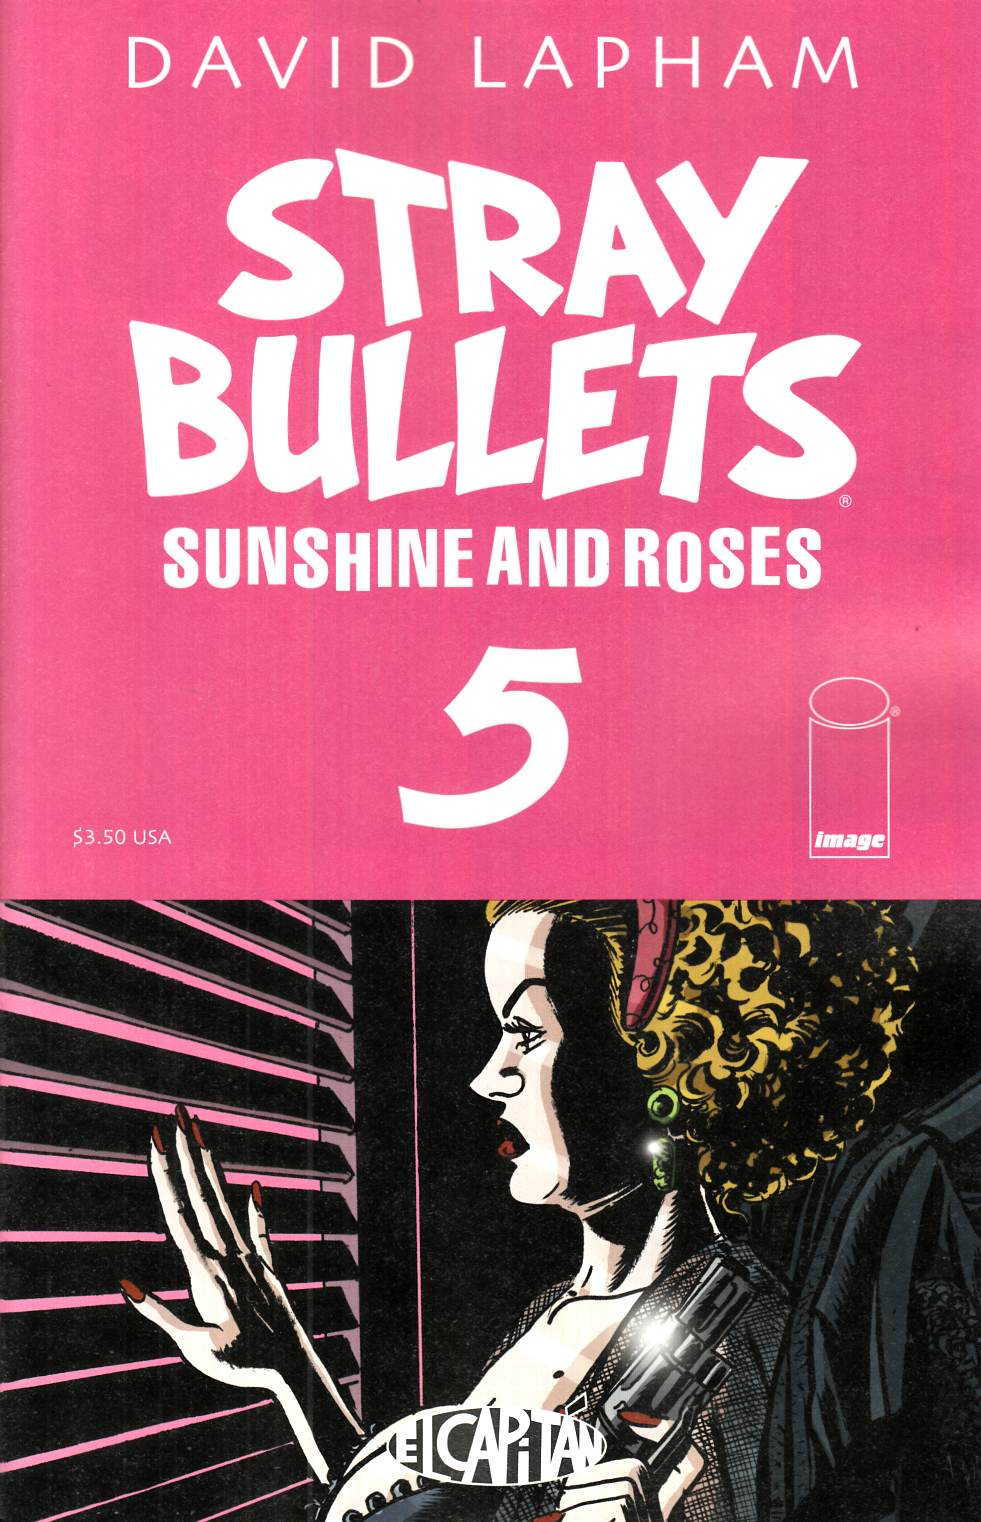 Stray Bullets Sunshine & Roses #5 [Image Comic] THUMBNAIL